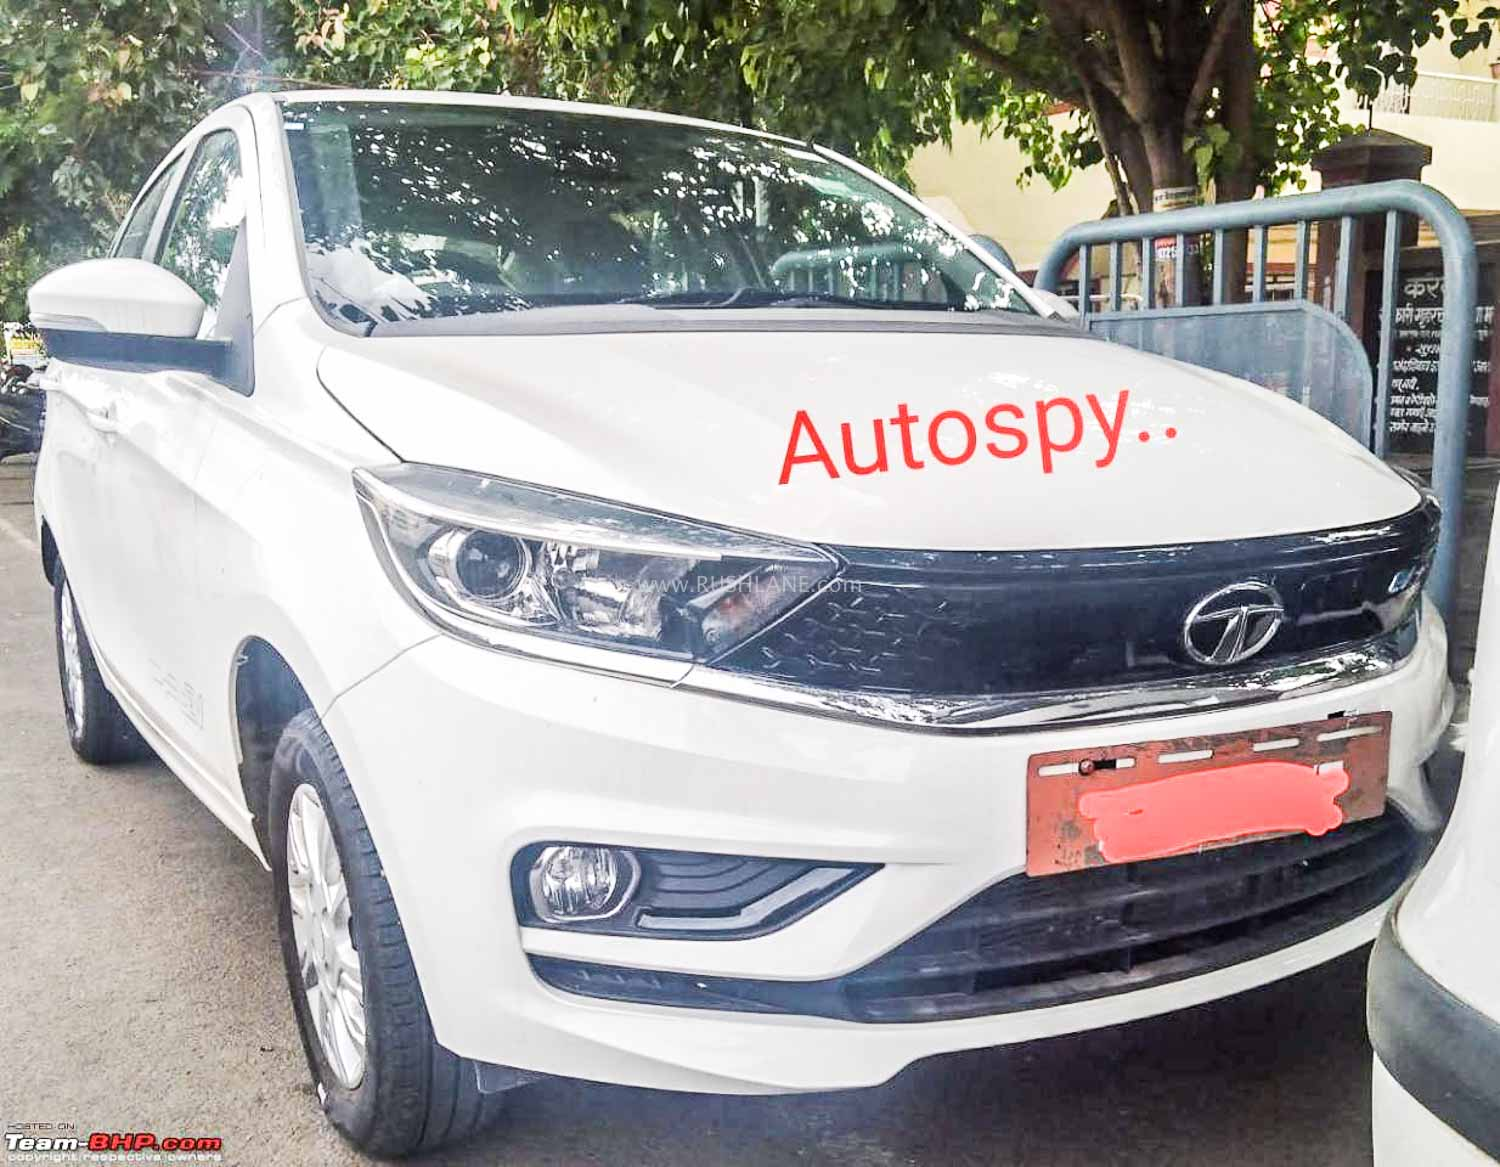 2020 Tata Tigor Electric facelift spied undisguised with new front